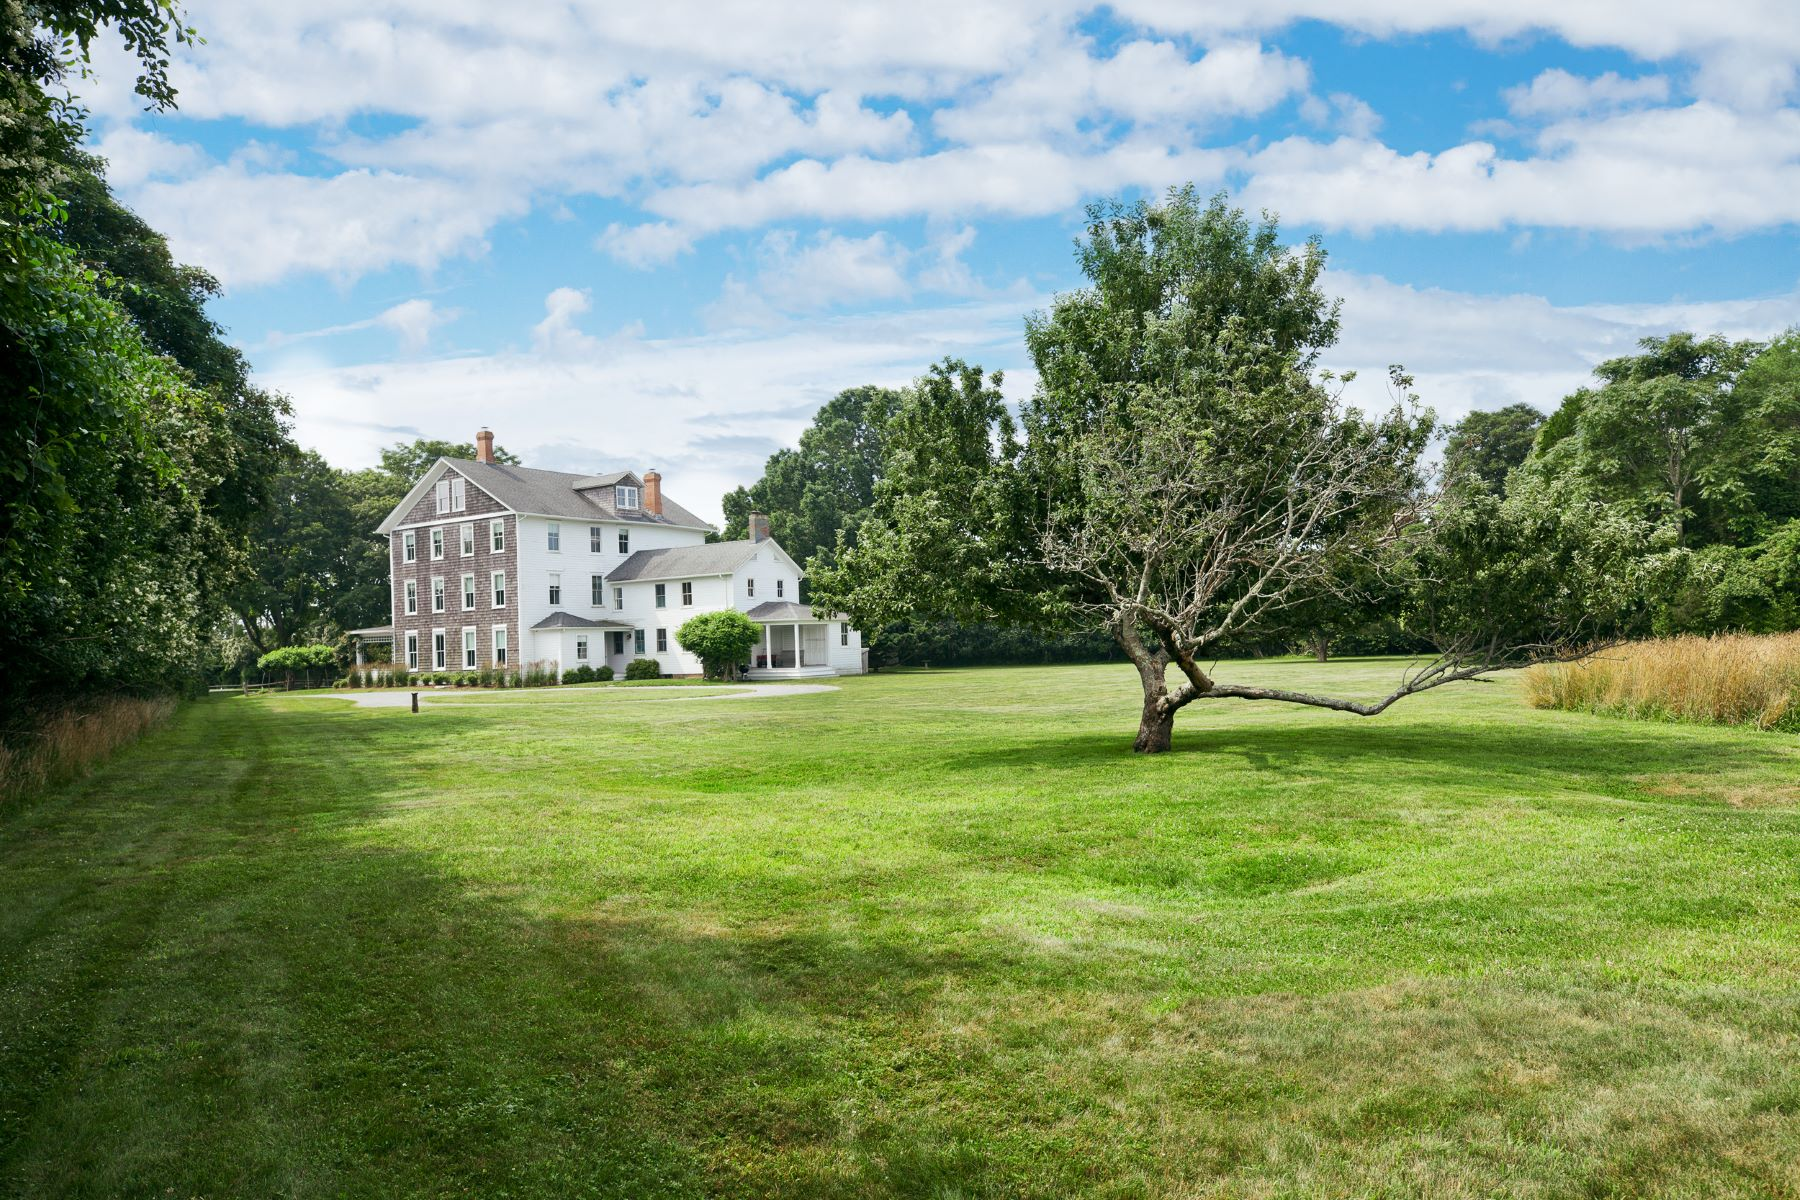 Single Family Homes for Sale at Largest Acreage Available Near Ocean 72 Apaquogue Road East Hampton, New York 11937 United States